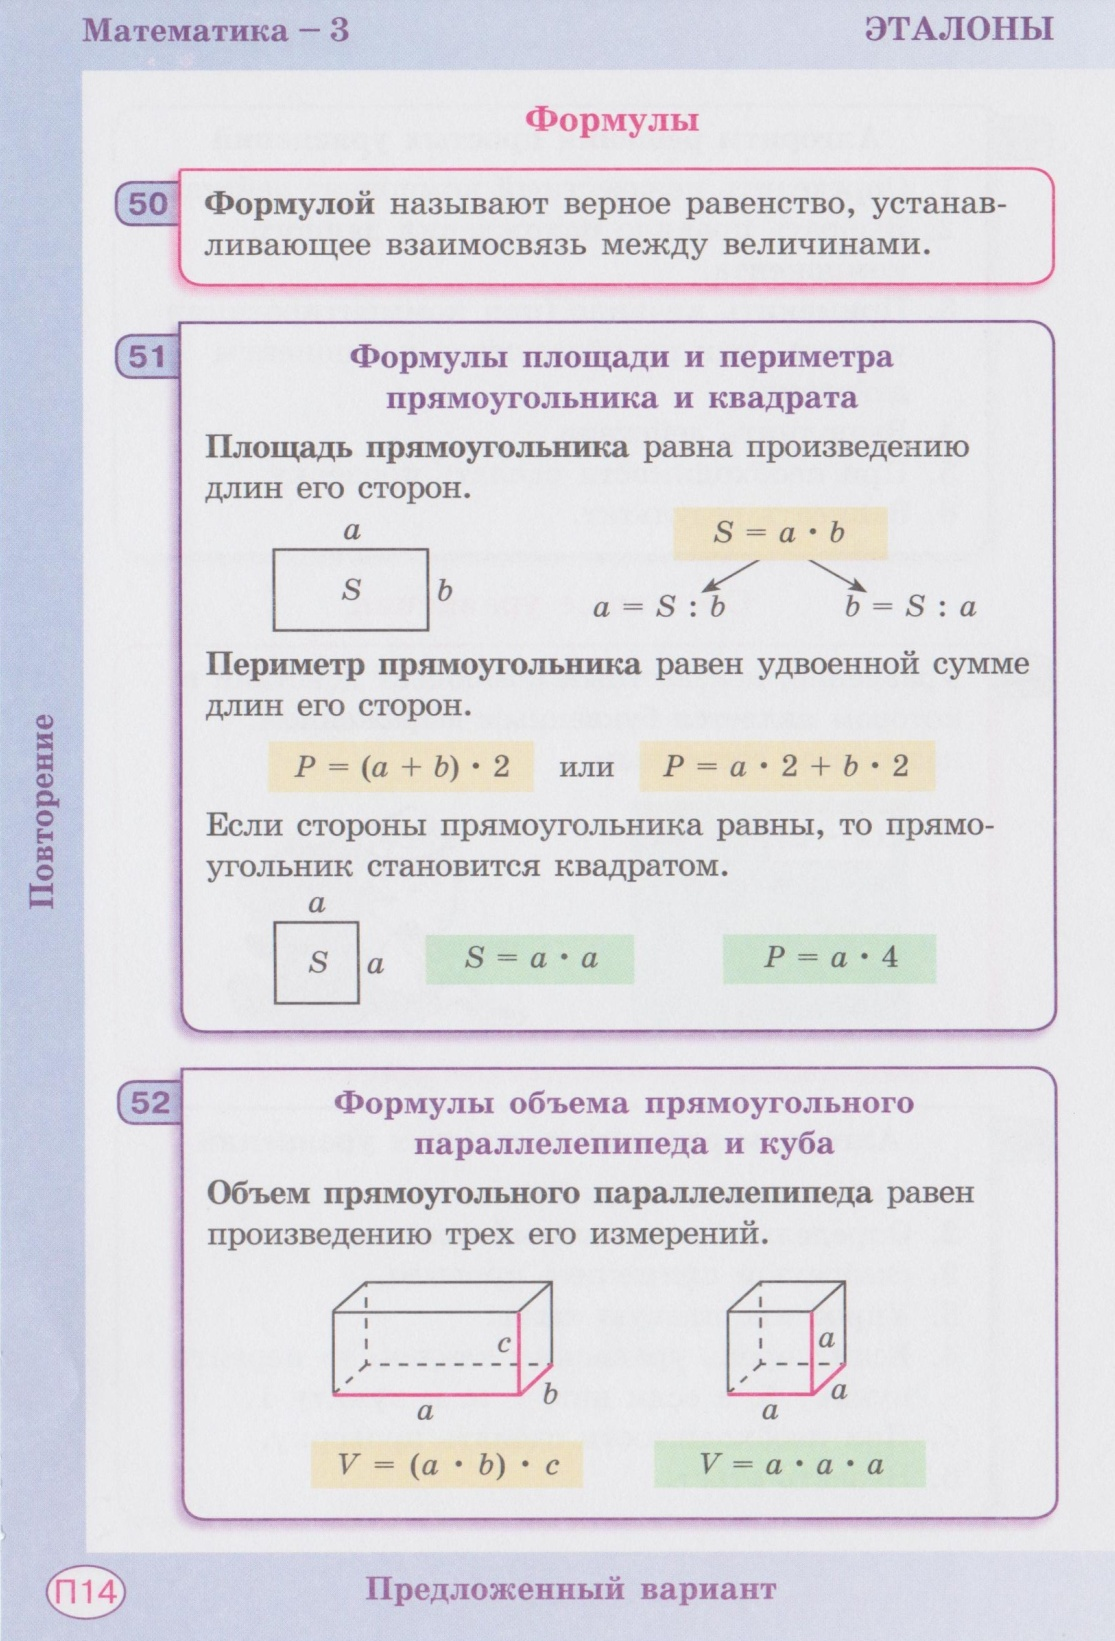 C:\Users\Настя\Pictures\2012-09-08 14\14 001.jpg